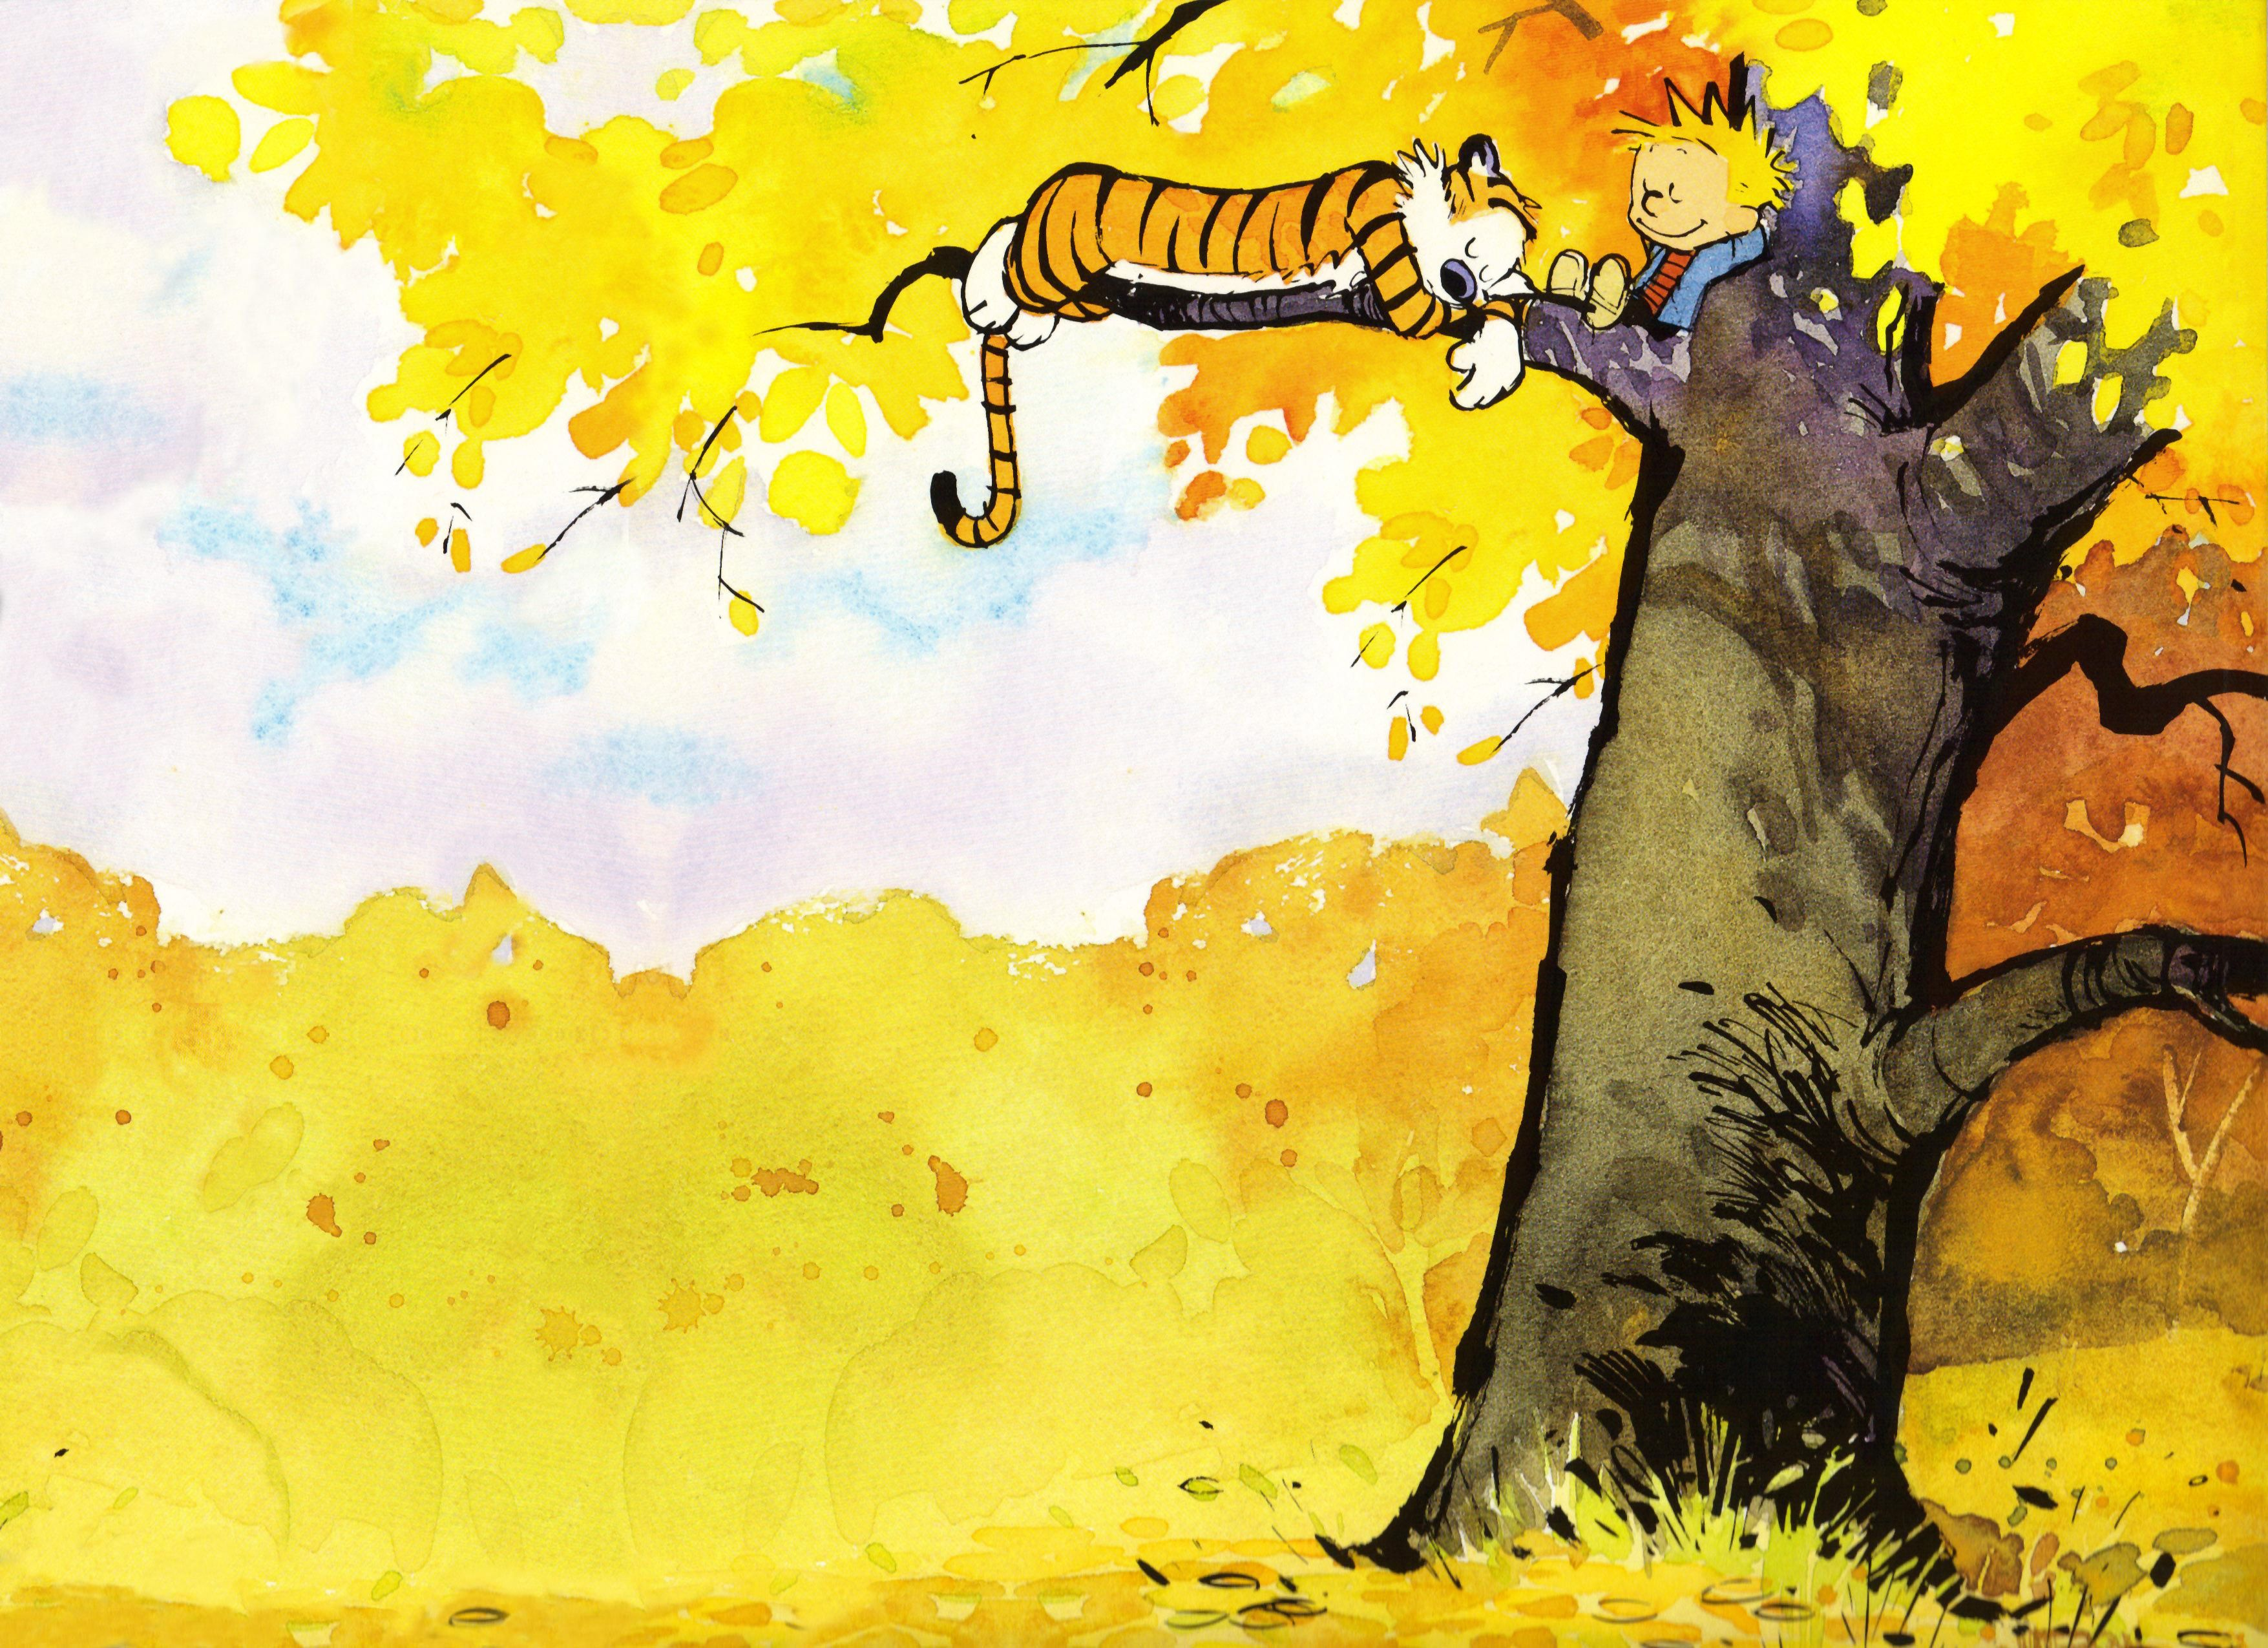 Workplace Lessons from Calvin and Hobbes | Cartooning | Pinterest ...